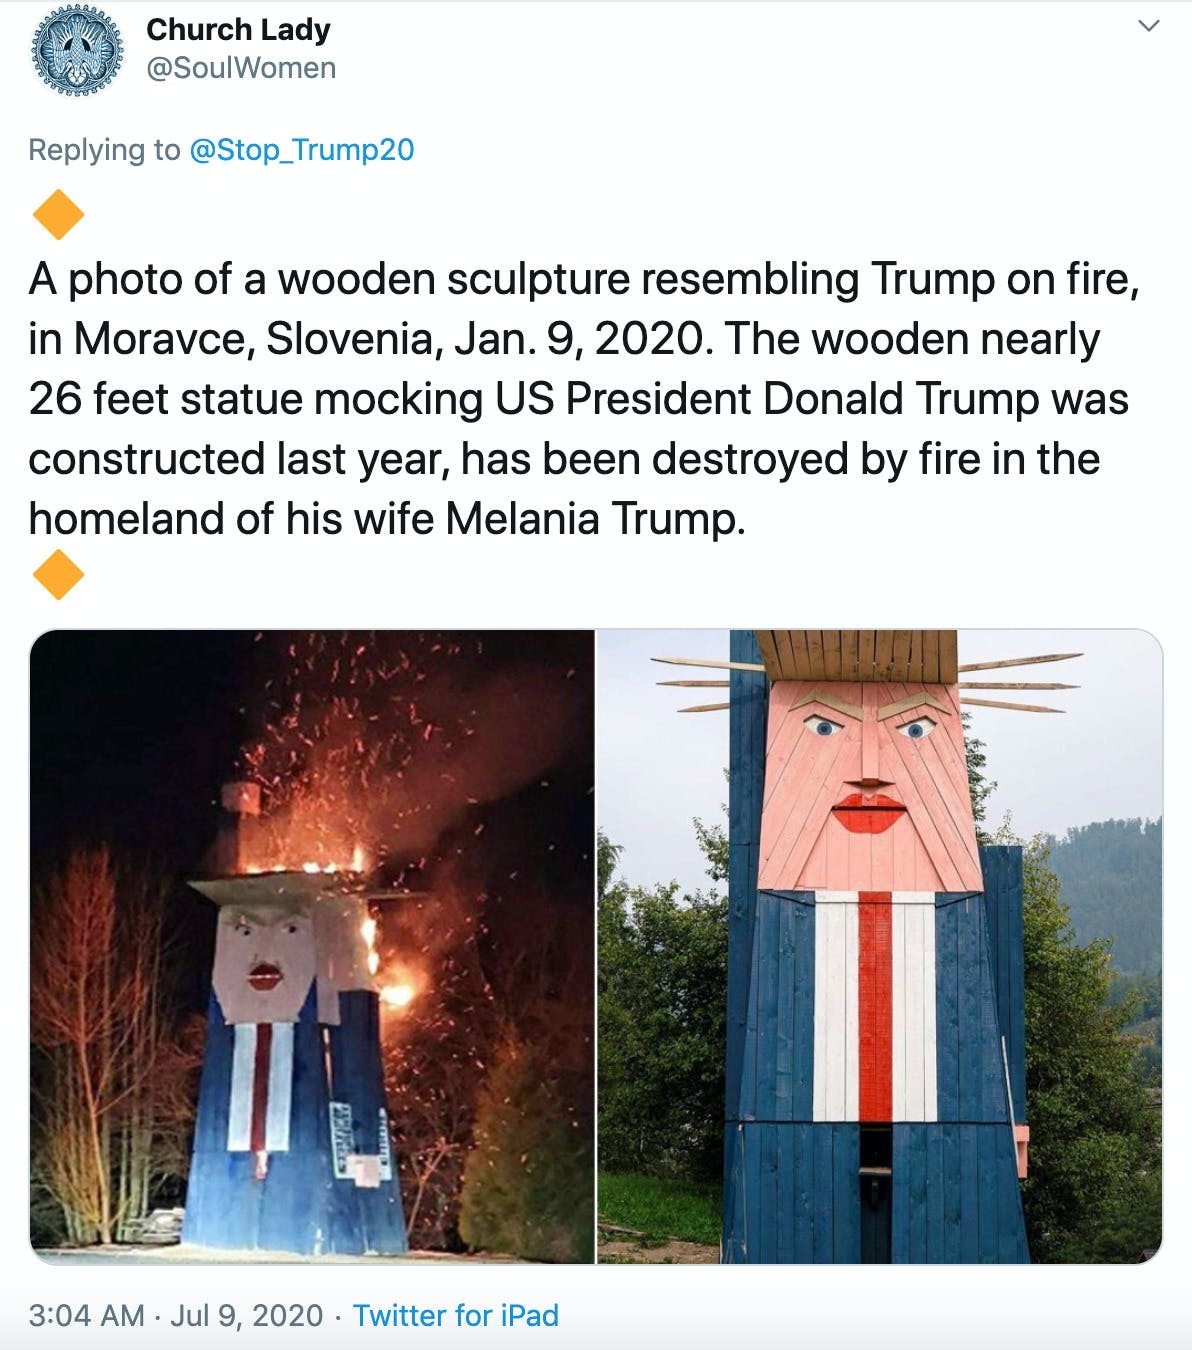 """""""A photo of a wooden sculpture resembling Trump on fire, in Moravce, Slovenia, Jan. 9, 2020. The wooden nearly 26 feet statue mocking US President Donald Trump was constructed last year, has been destroyed by fire in the homeland of his wife Melania Trump."""" over image of blocky wooden Trump sculpture and a second image of it on fire"""